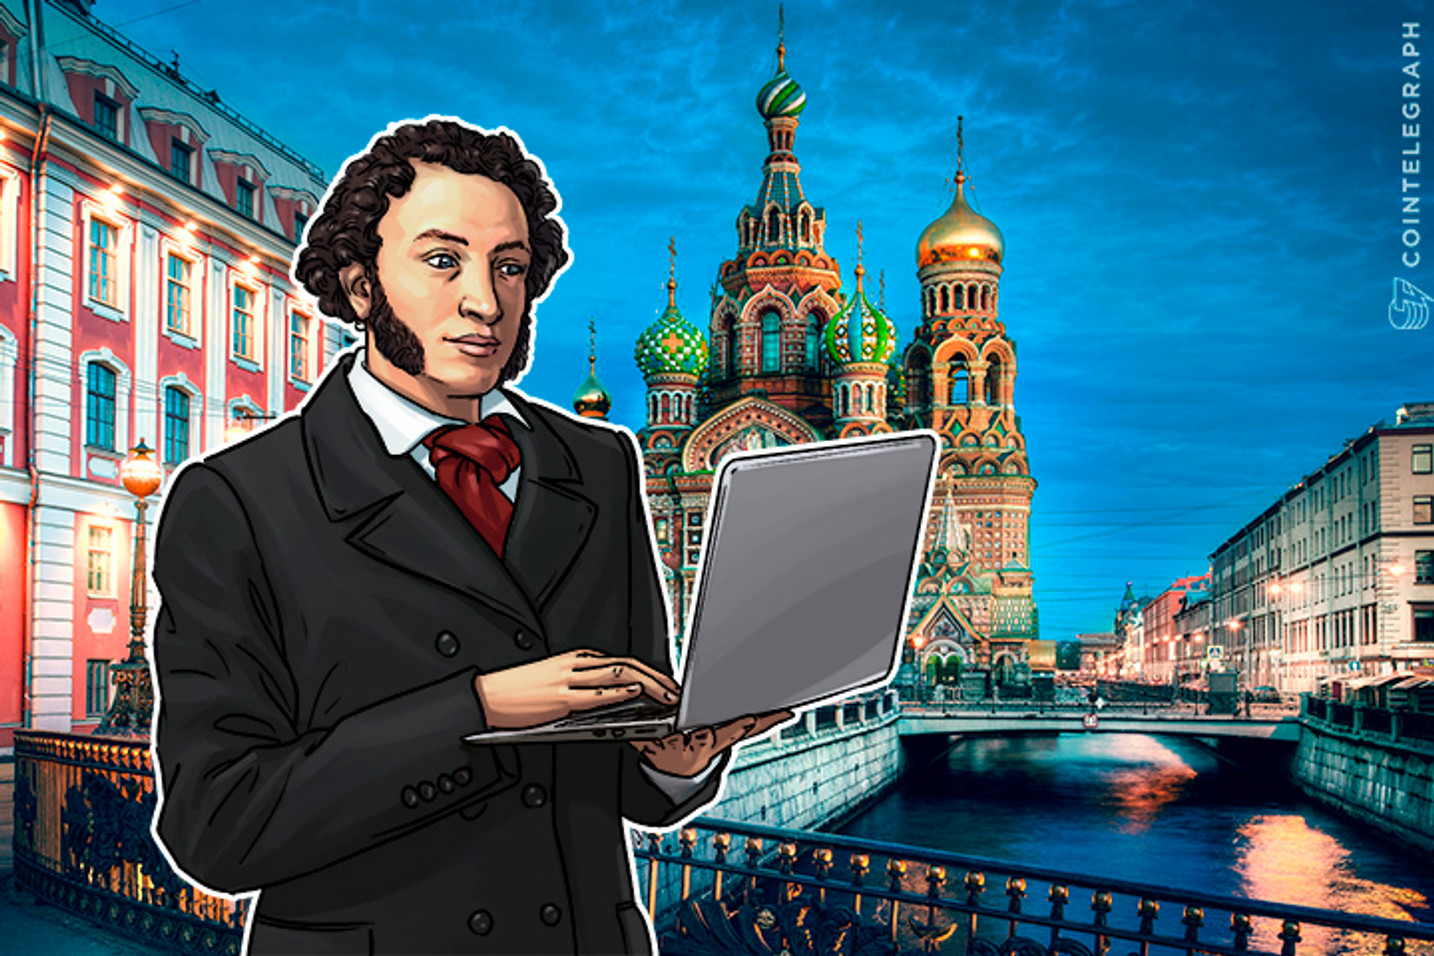 Russian Hackathon Will Bring Developers To Compete For Prizes, Open To Foreigners